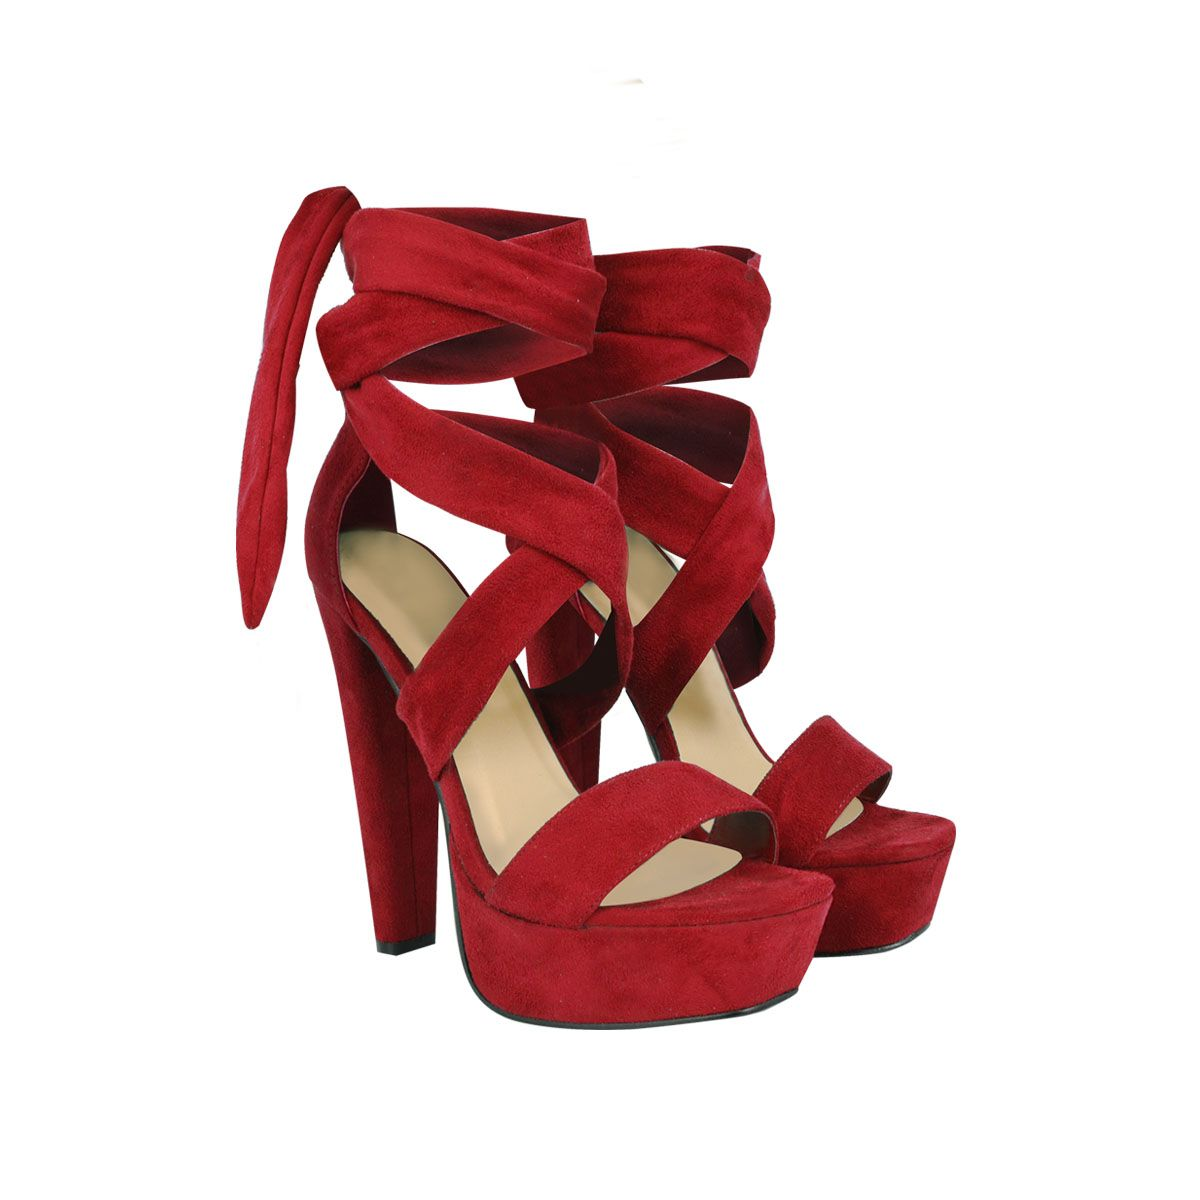 8aed6e0e34713 Red Suede Tie Lace Up Ankle Strap Peep Toe Block Platform Heel ...